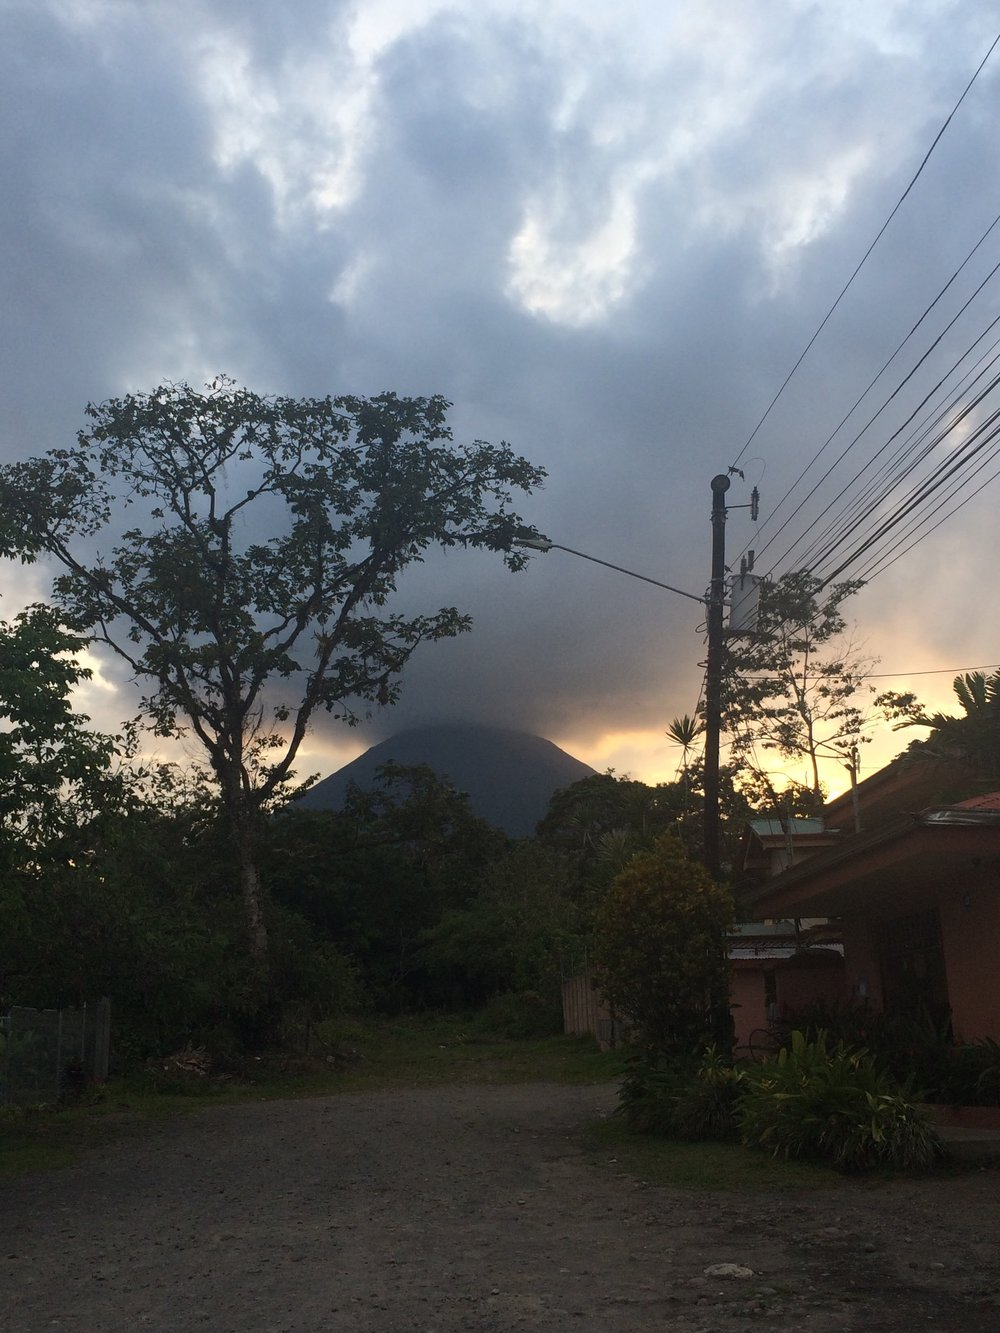 The Setting Sun and Arenal Volcano in La Fortuna, Costa Rica